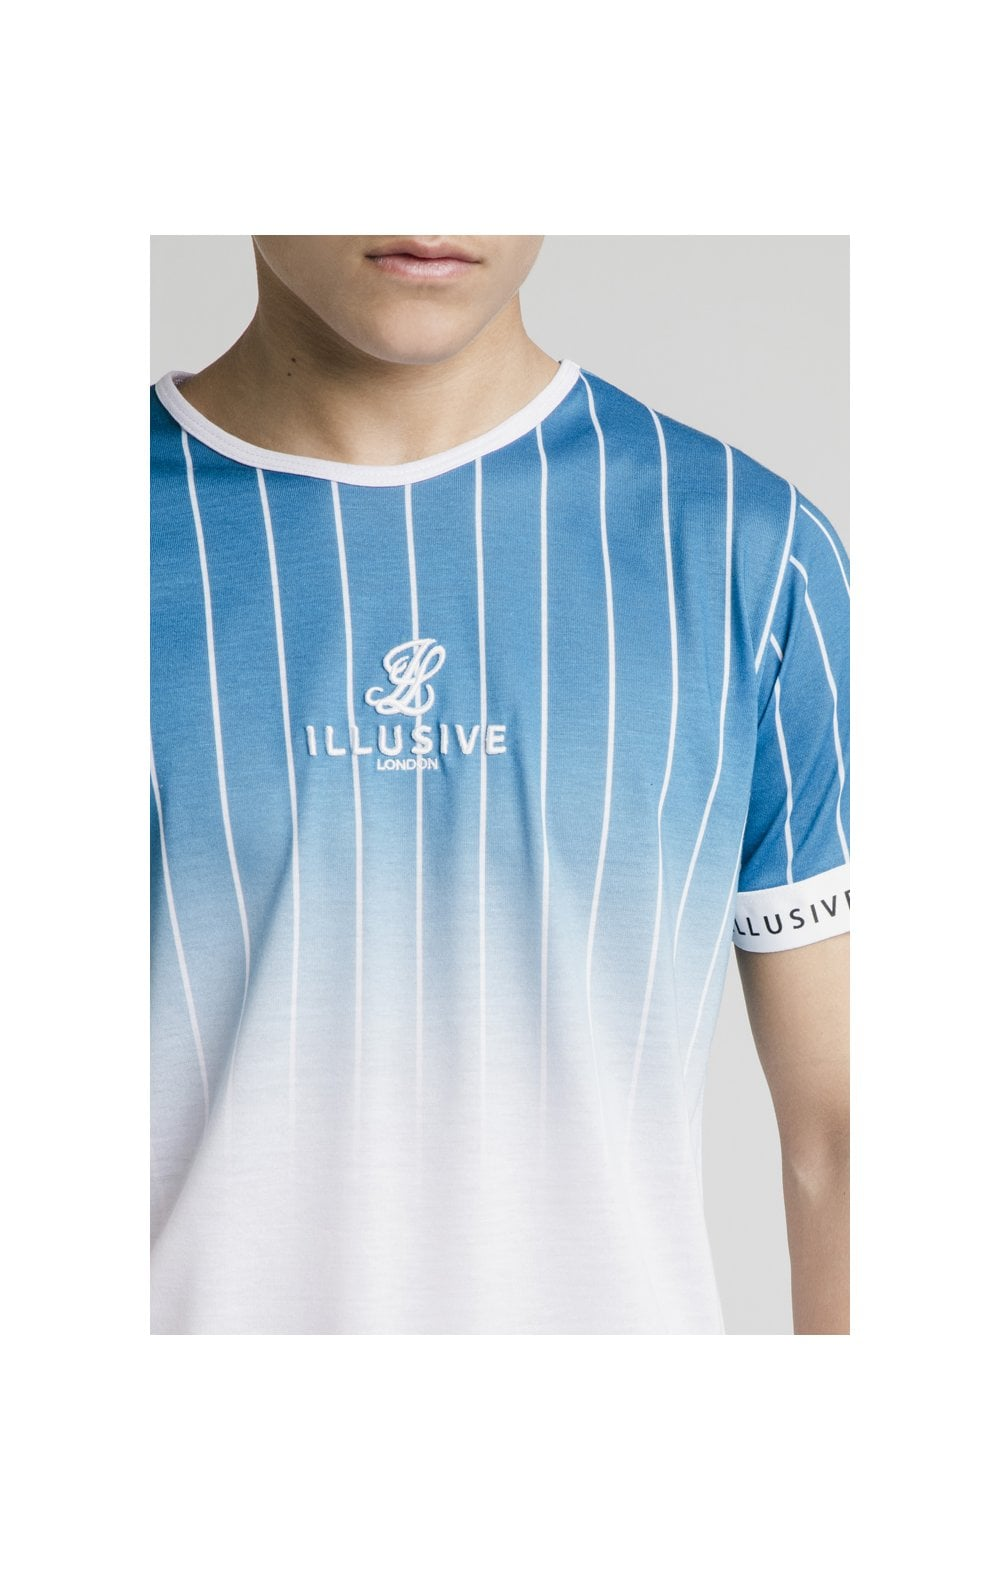 Illusive London Fade Stripe Tech Tee - Teal & White (1)